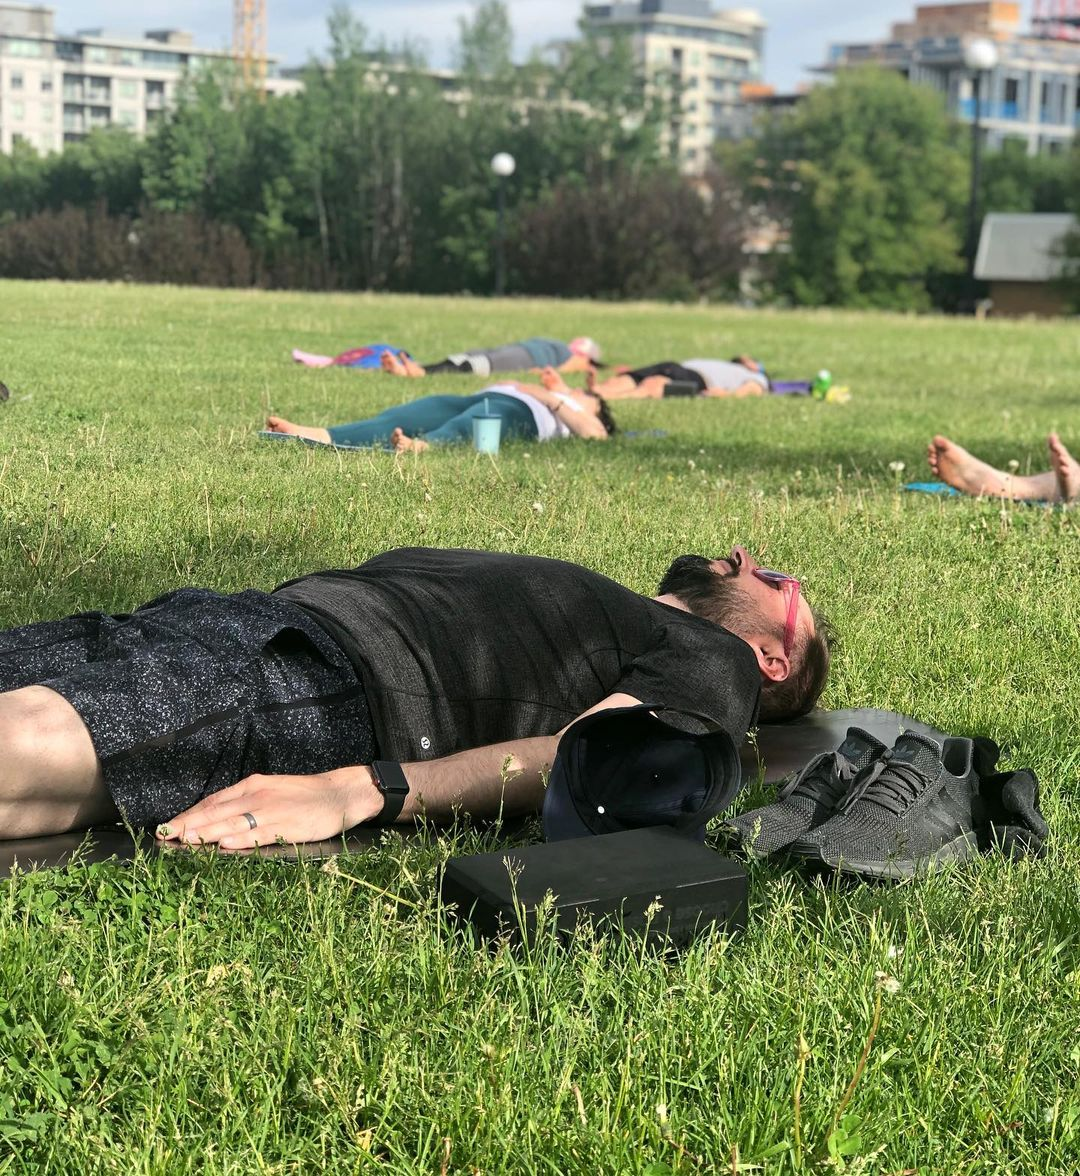 People laying in the grass doing yoga